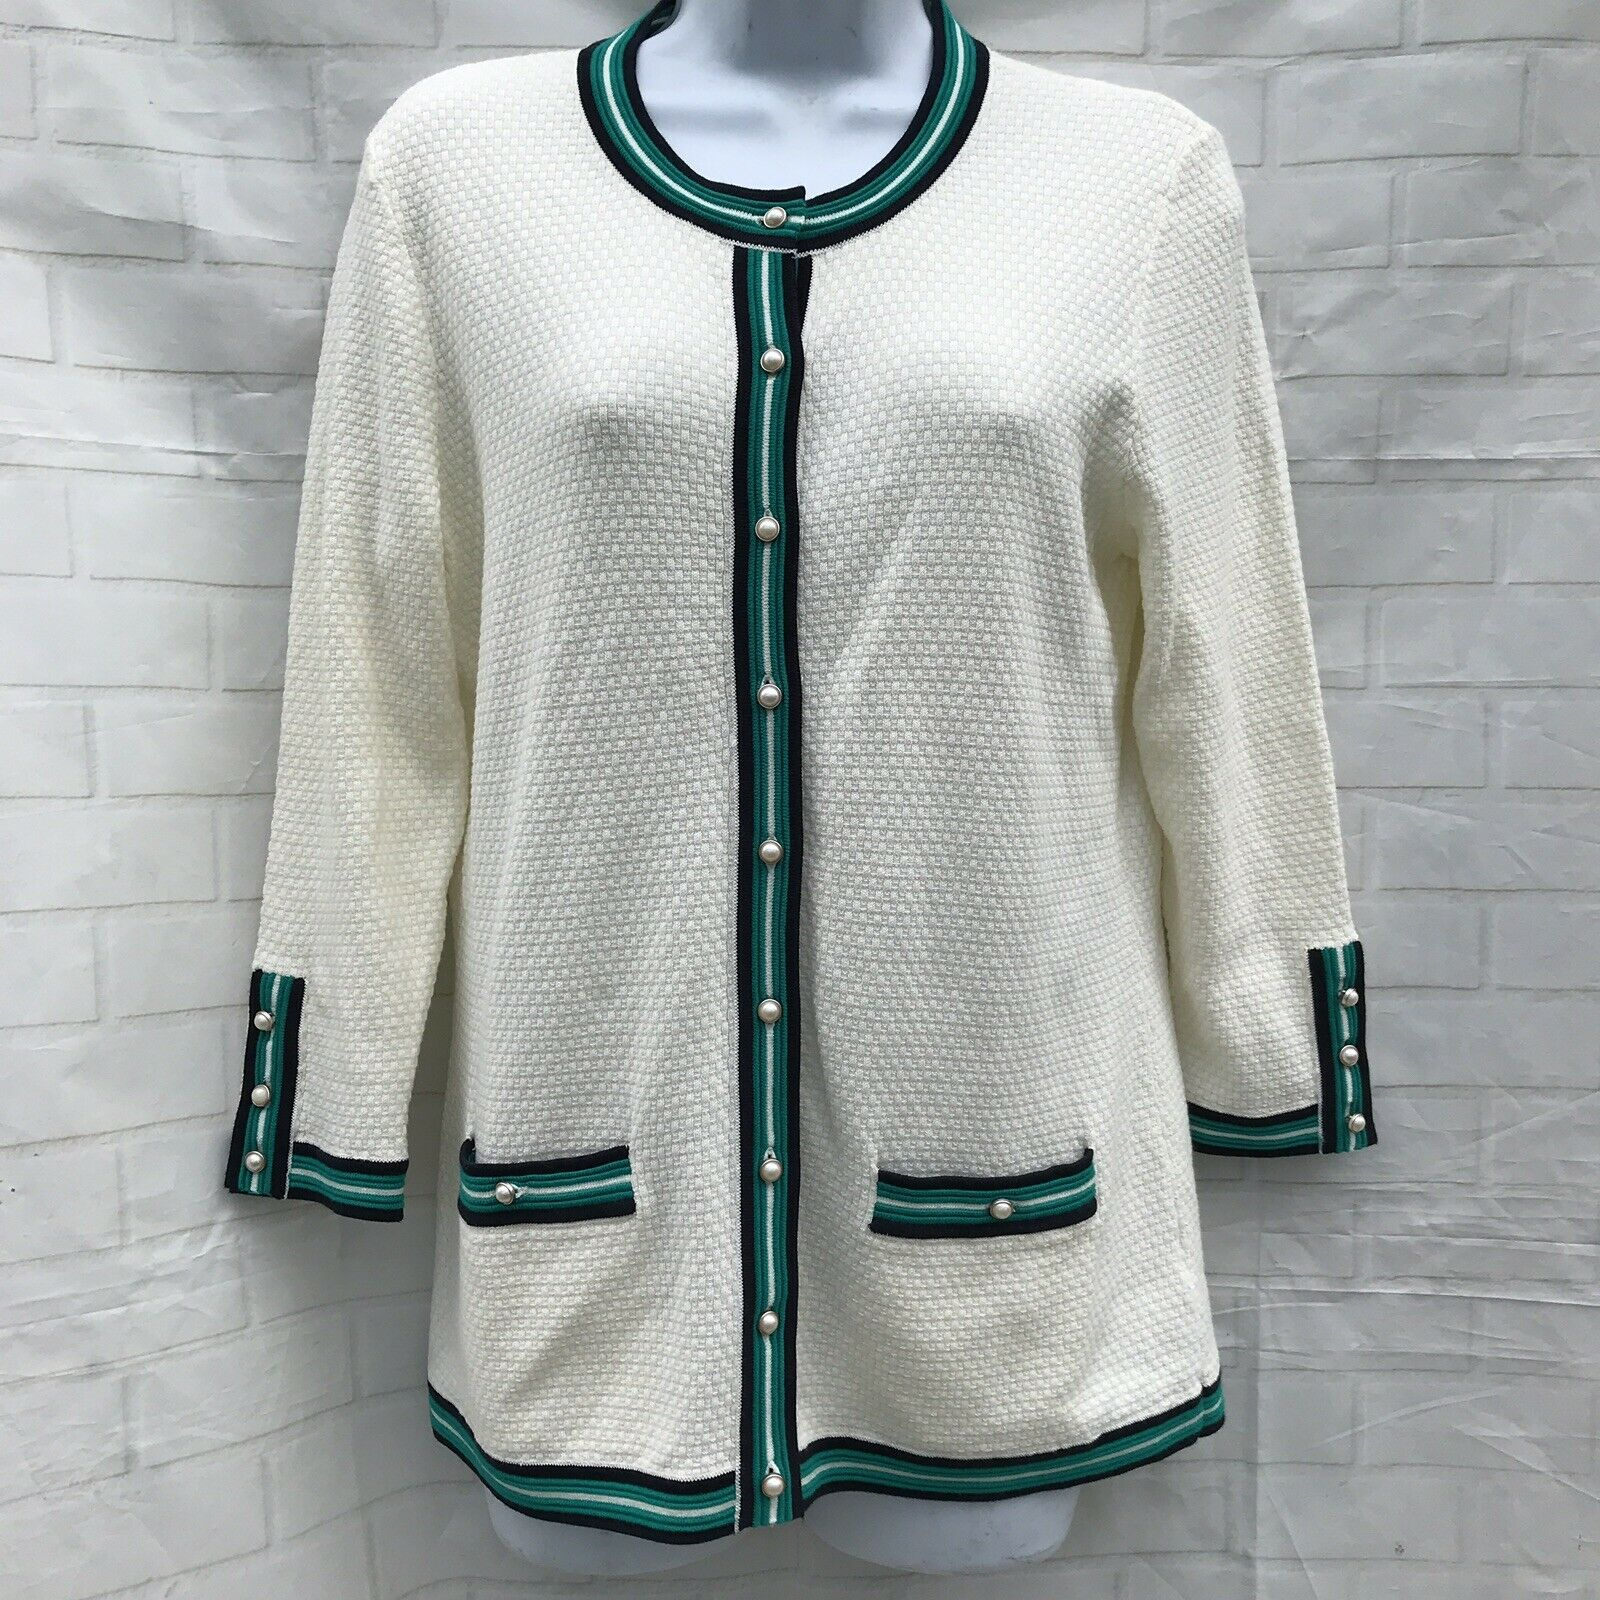 Talbots Cream Cardigan Sweater Pearl Buttons Teal Navy Trim Size Small NEW